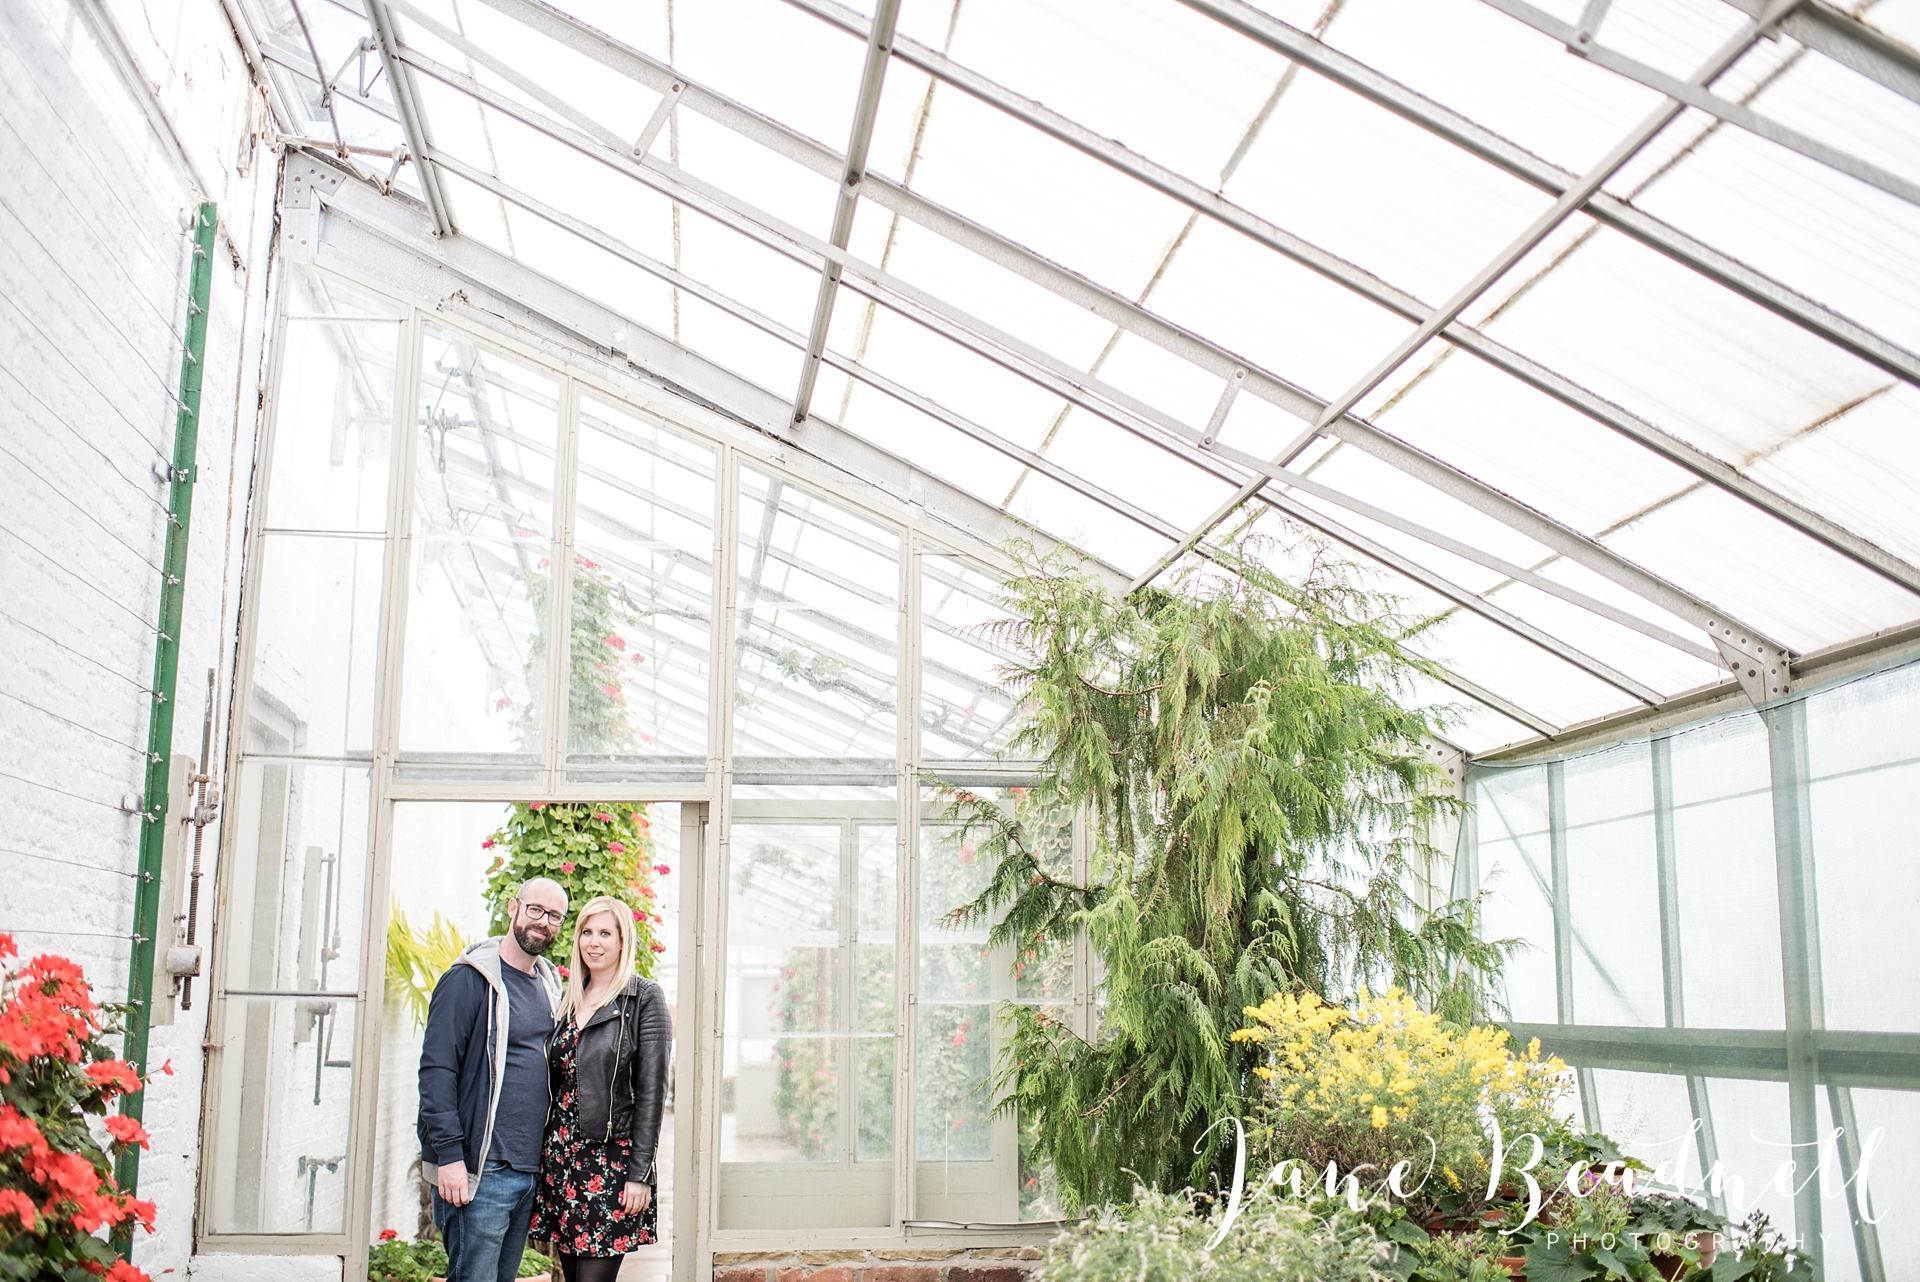 Temple Newsam engagement photography by Jane Beadnell Wedding Photography_0023